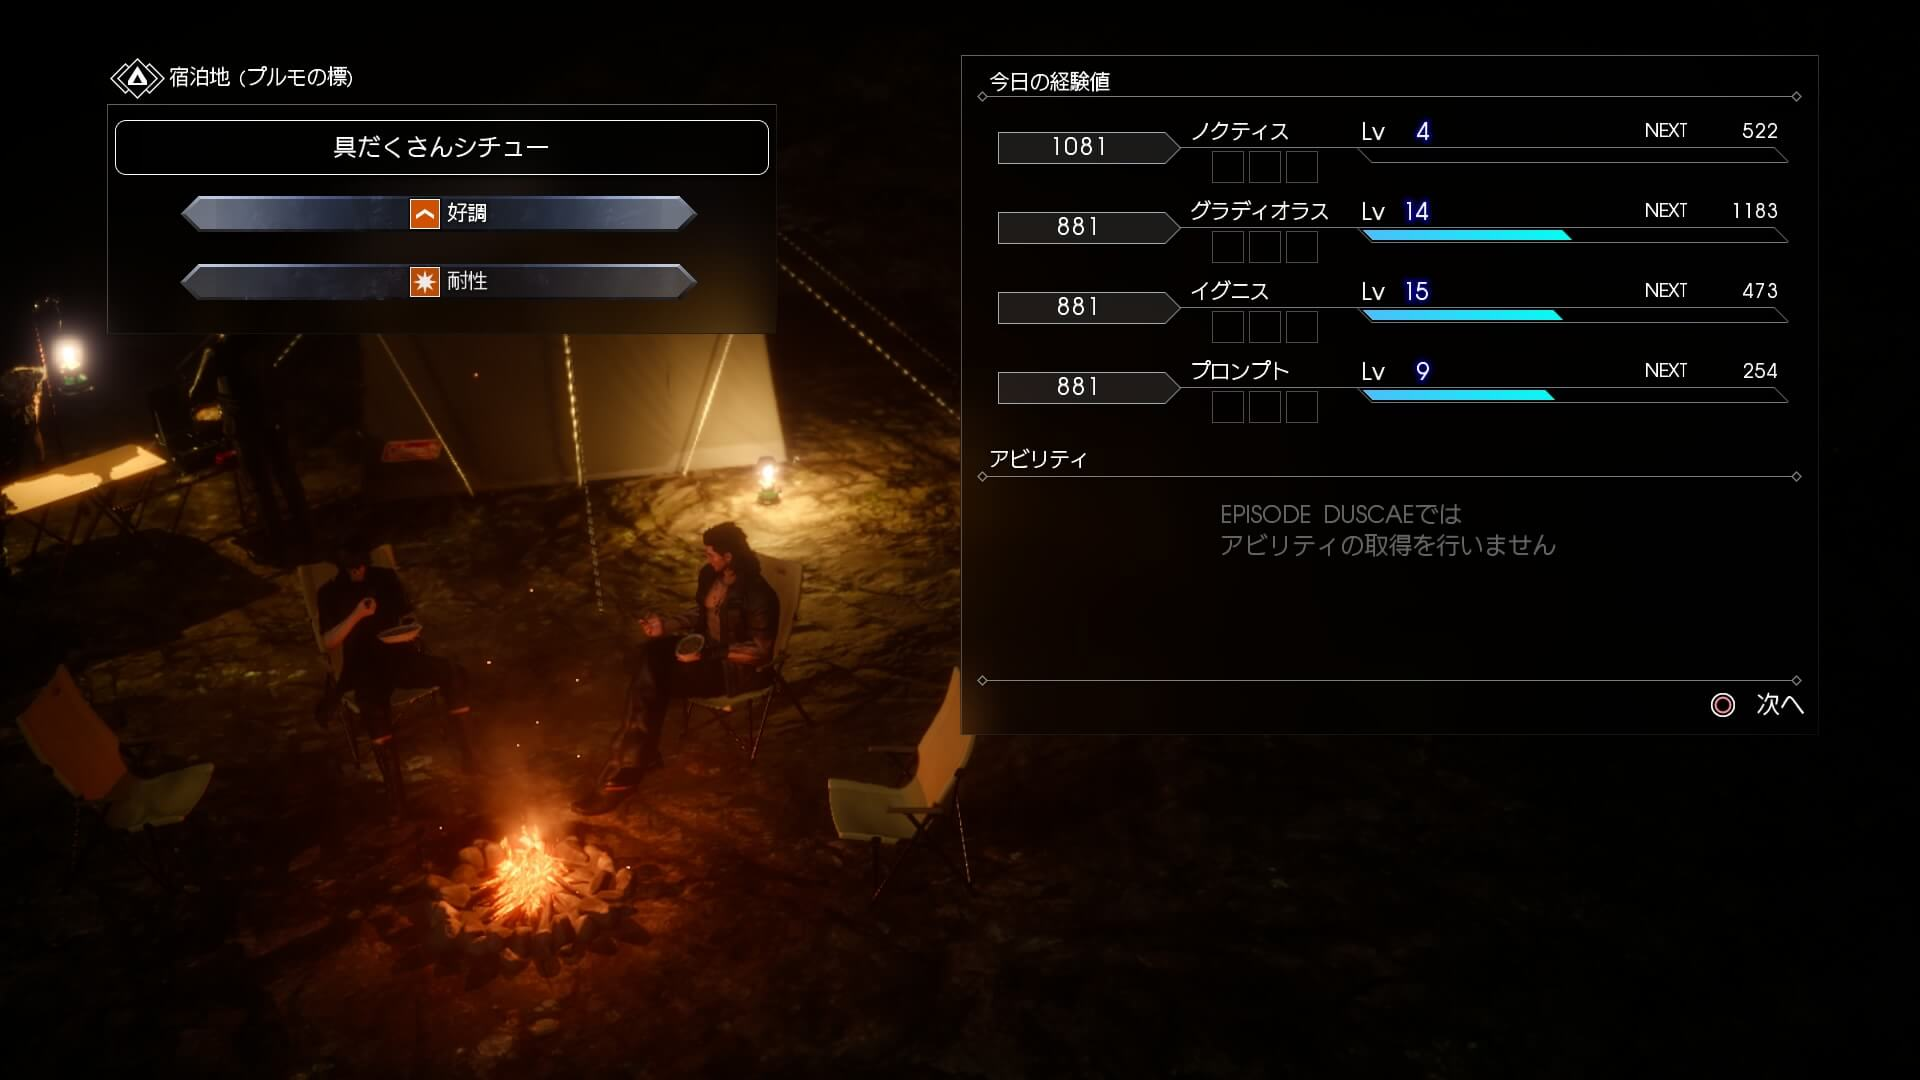 FINAL FANTASY XV EPISODE DUSCAE_20150320161148